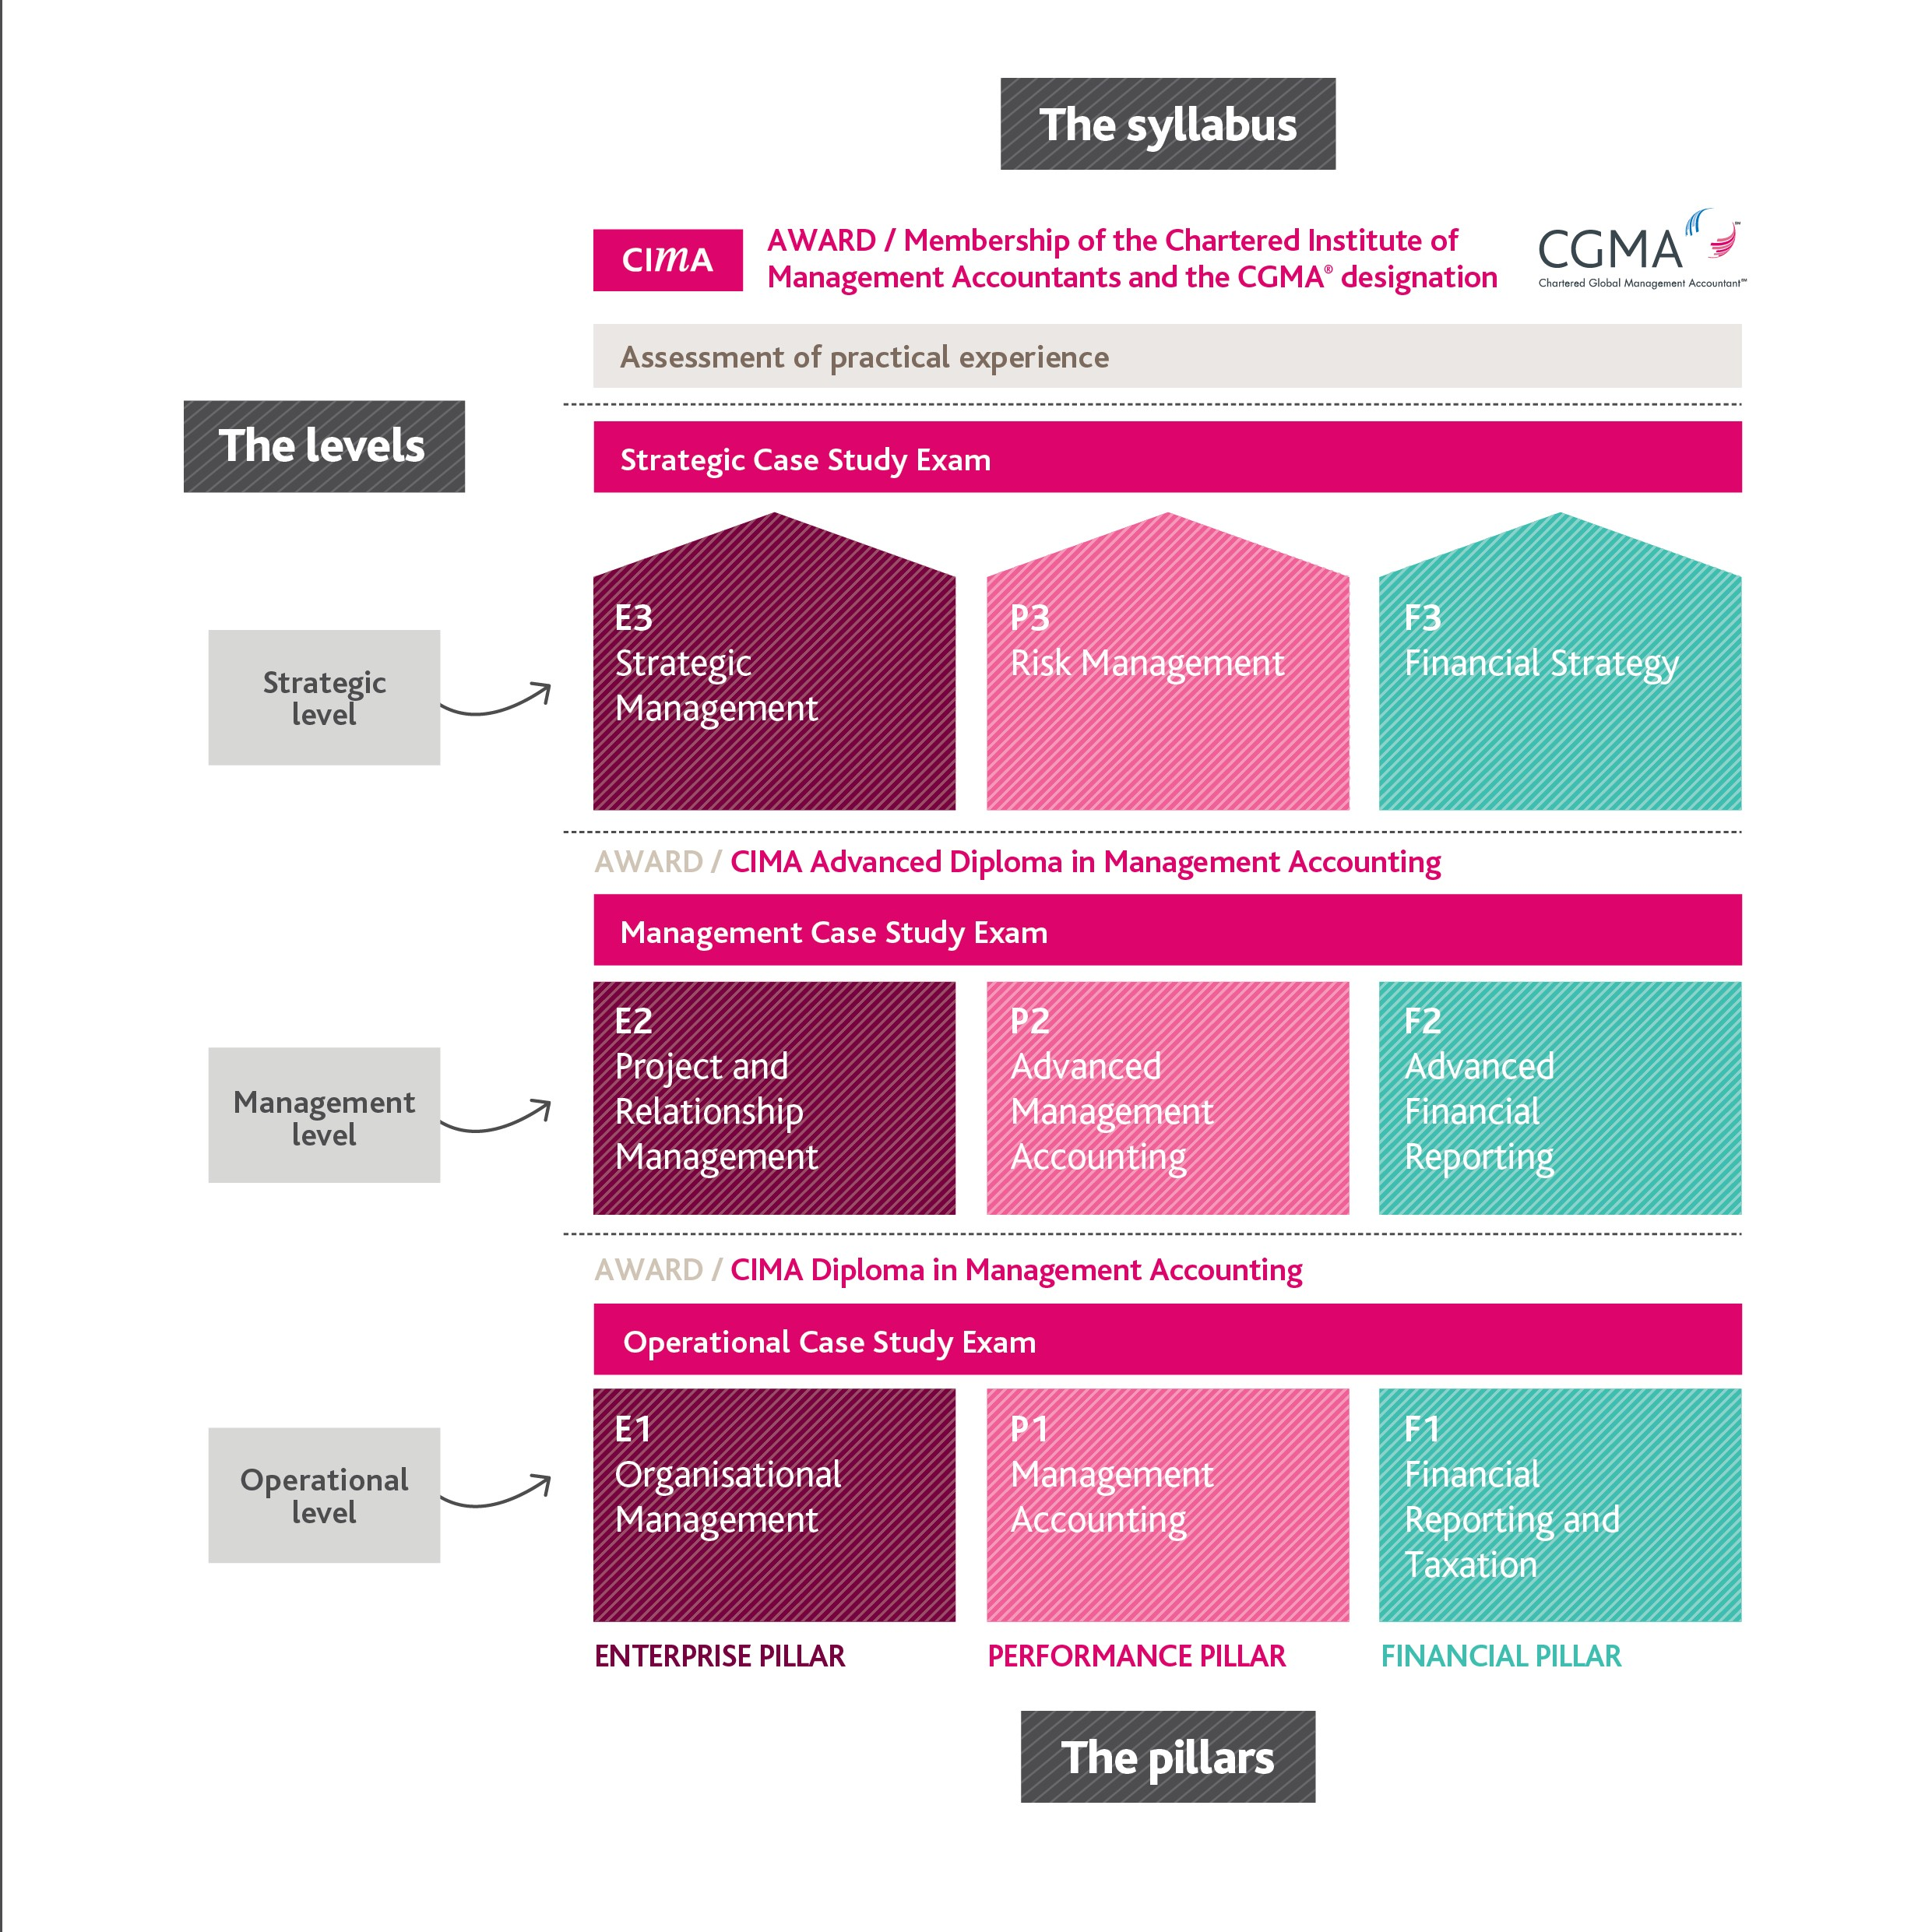 CIMA Professional Qualification Syllabus Diagram.jpg